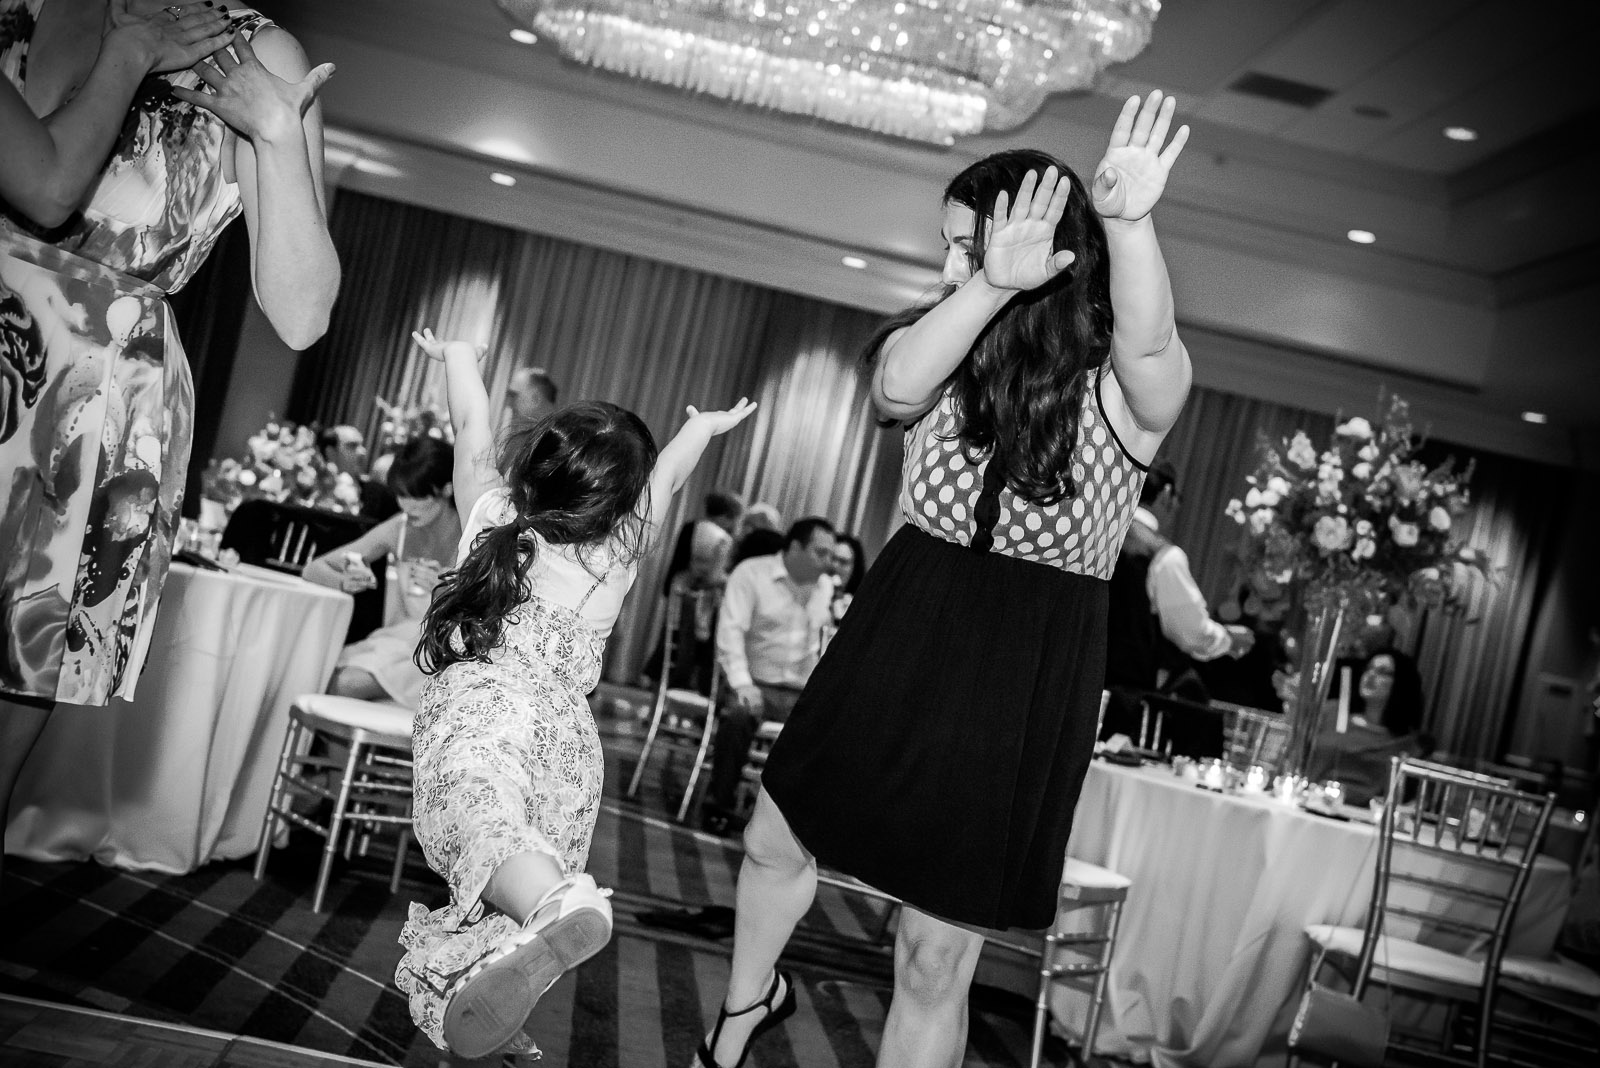 eric_and_christy_photographers_blog_wedding_emilypeter-54